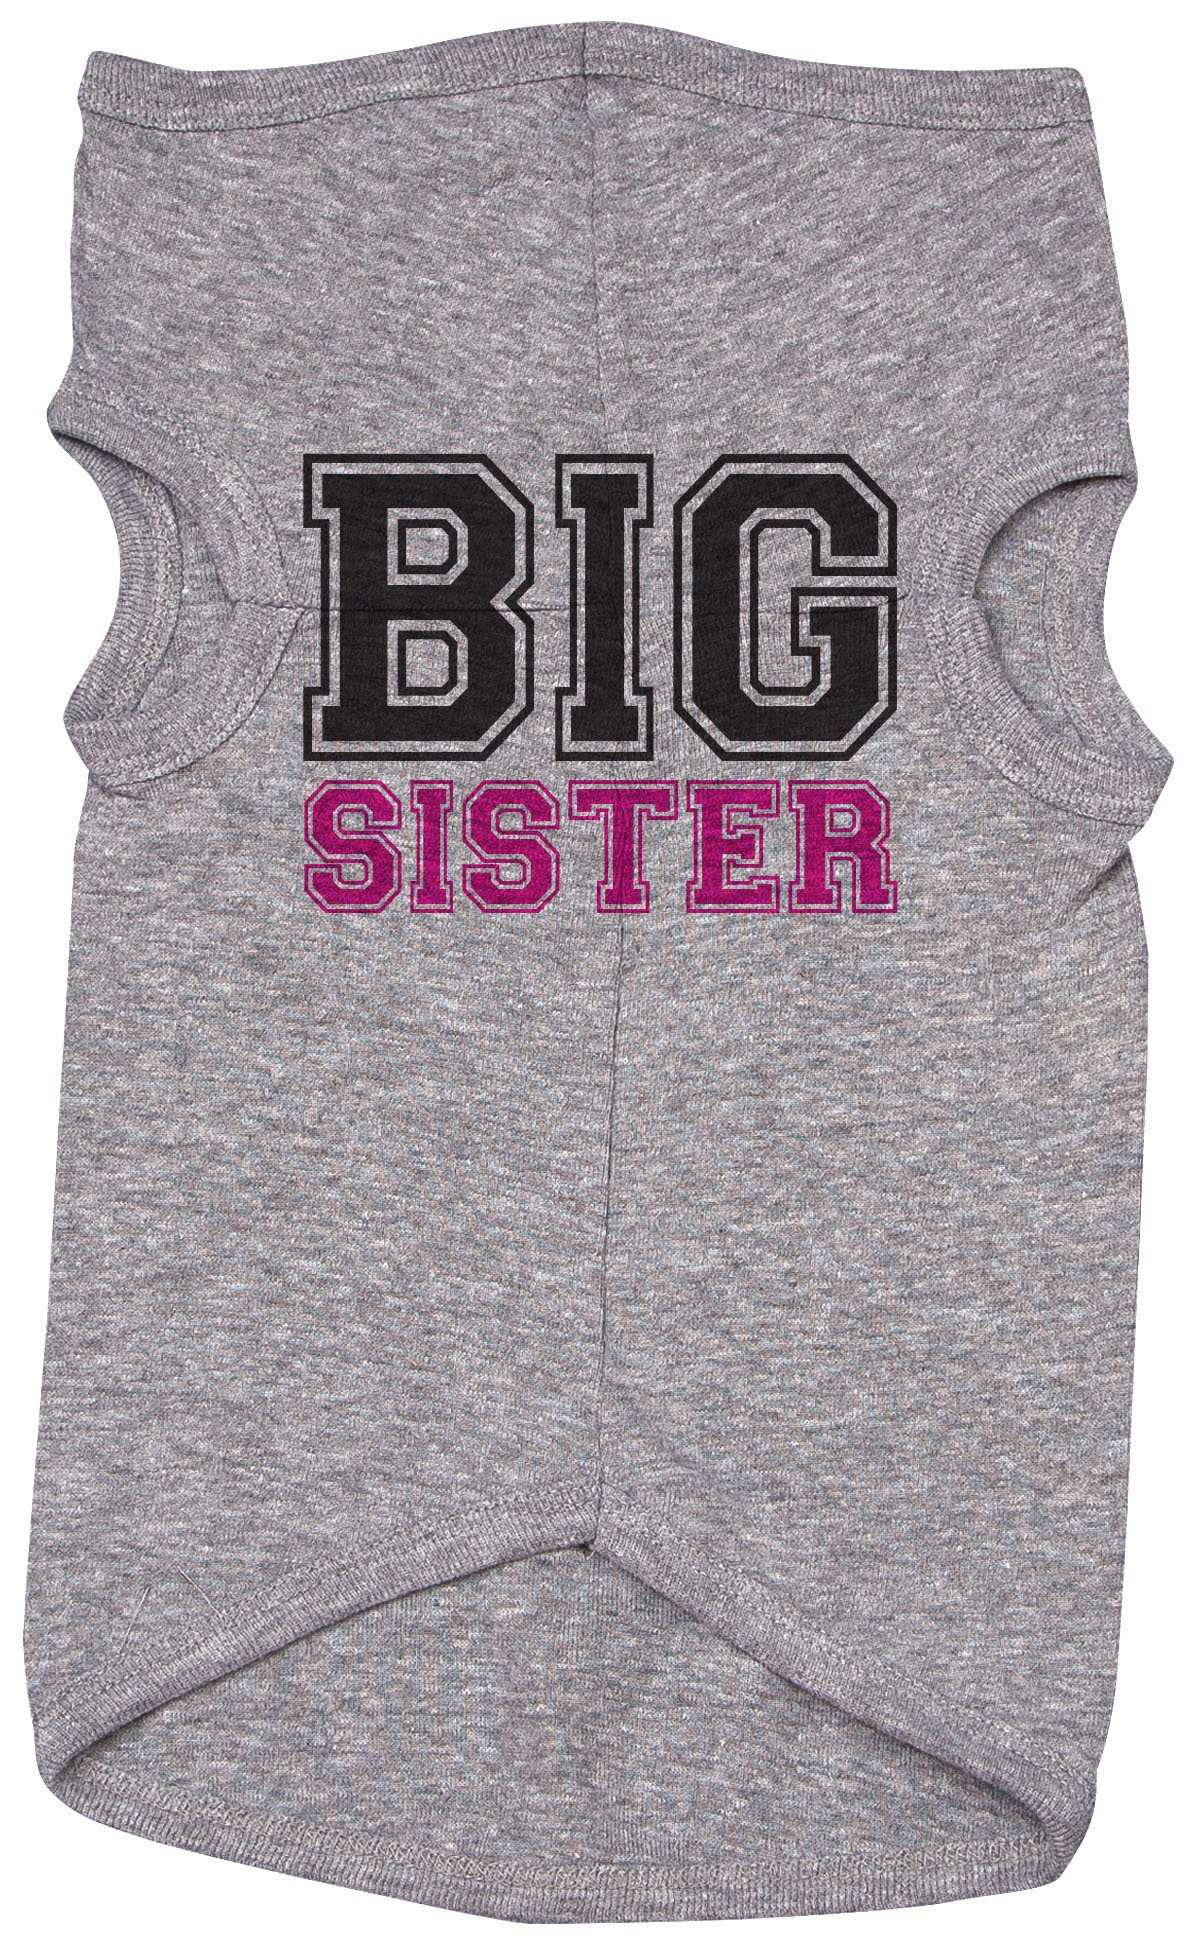 Baffle Sister Shirt For Dogs/BIG SISTER (COLLEGE FONT)/Grey Puppy Tee/Siblings (2XL)